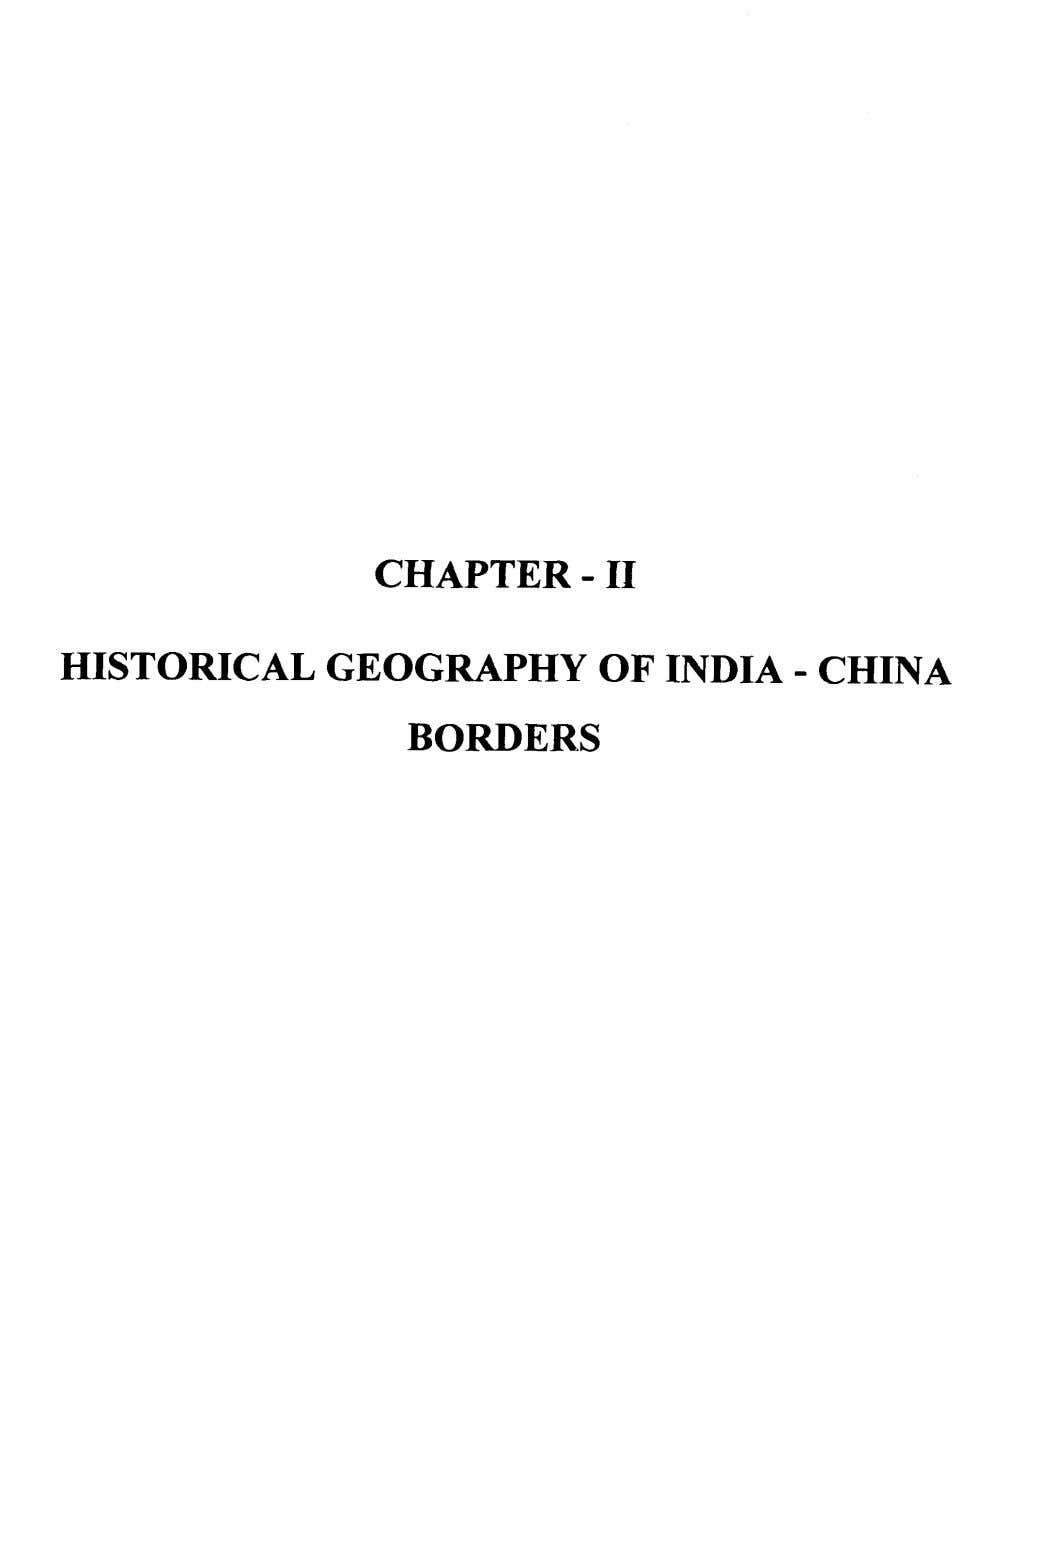 CHAPTER -11 HISTORICAL GEOGRAPHY OF INDIA - CHINA BORDERS